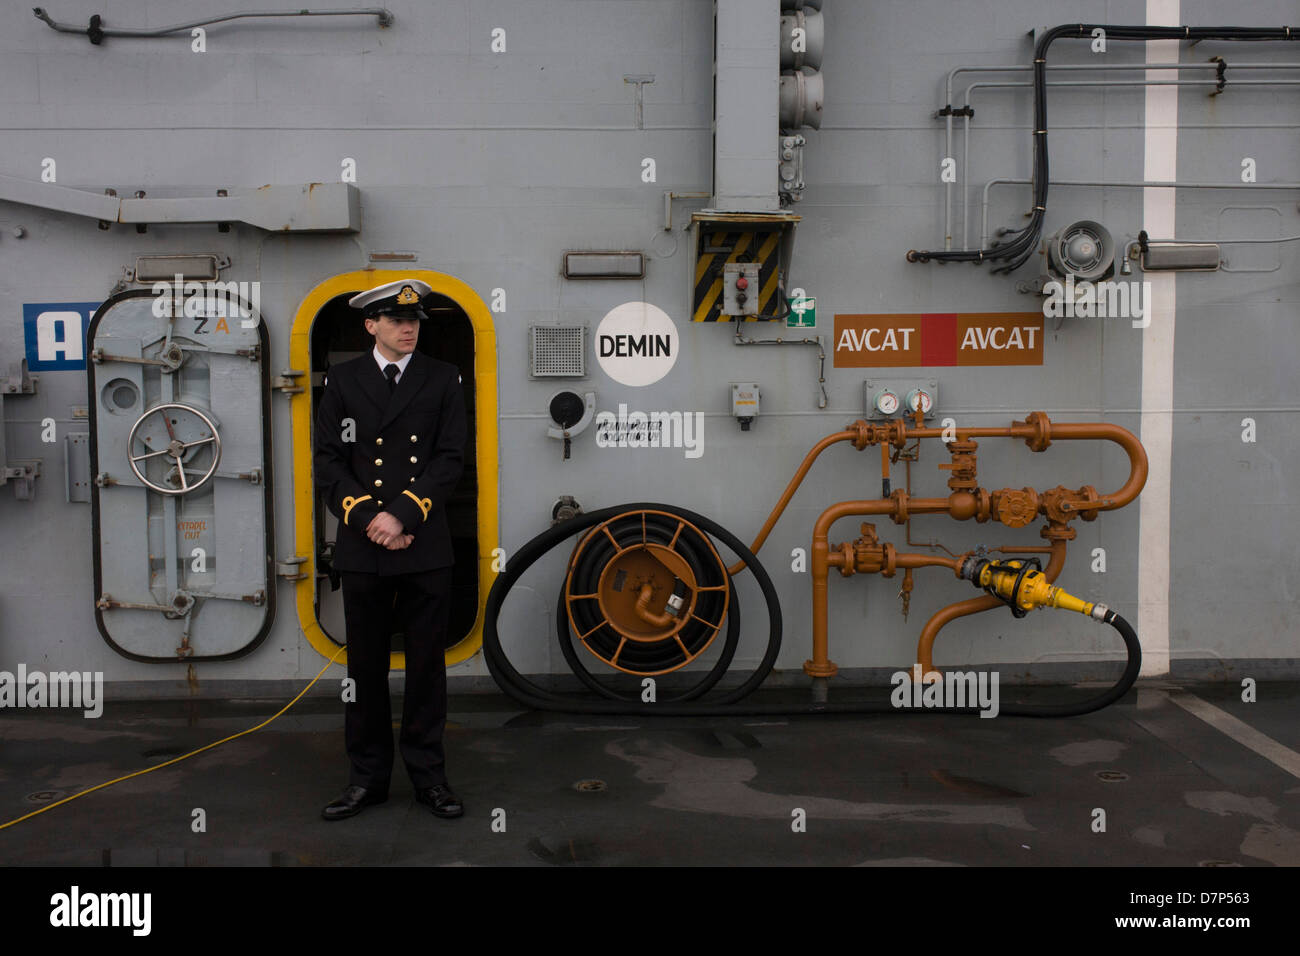 A student officer on duty on the top deck during a tour by the general public on-board the Royal Navy's aircraft - Stock Image